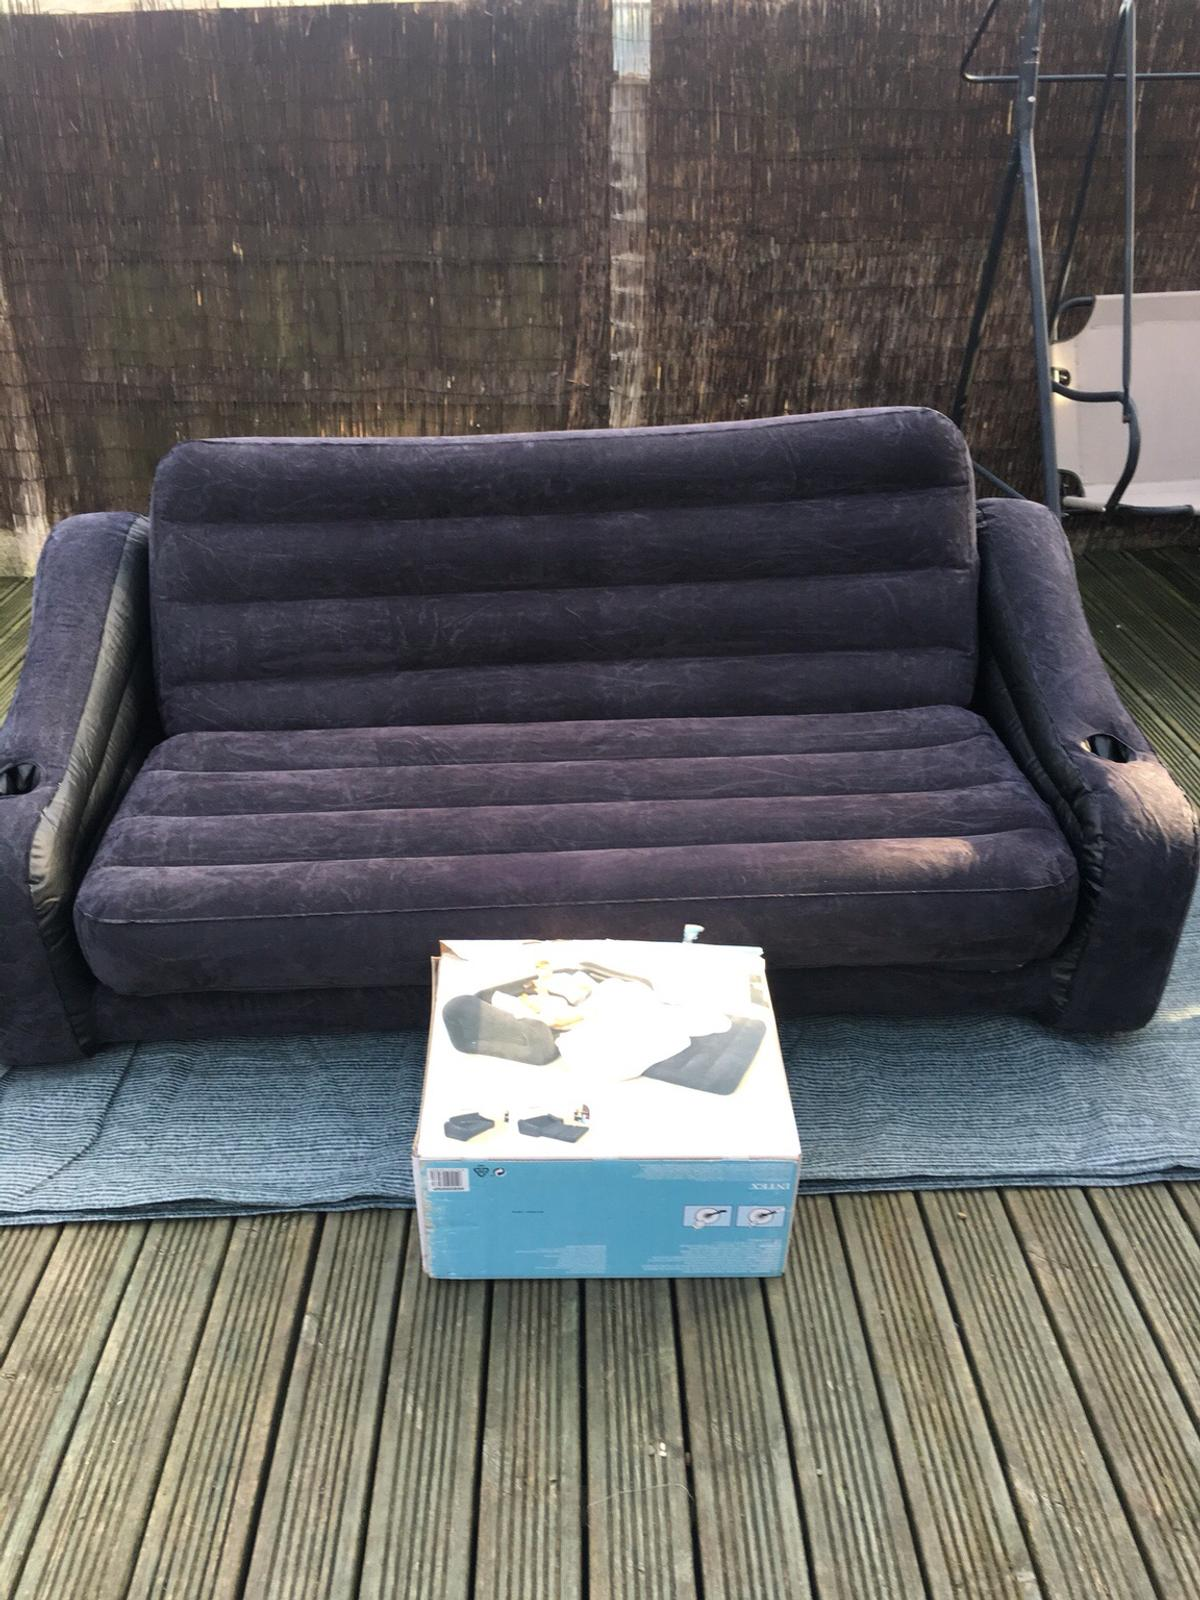 Big Inflatable Couch Intex Inflatable Camping Sofa Bed In Doncaster For 30 00